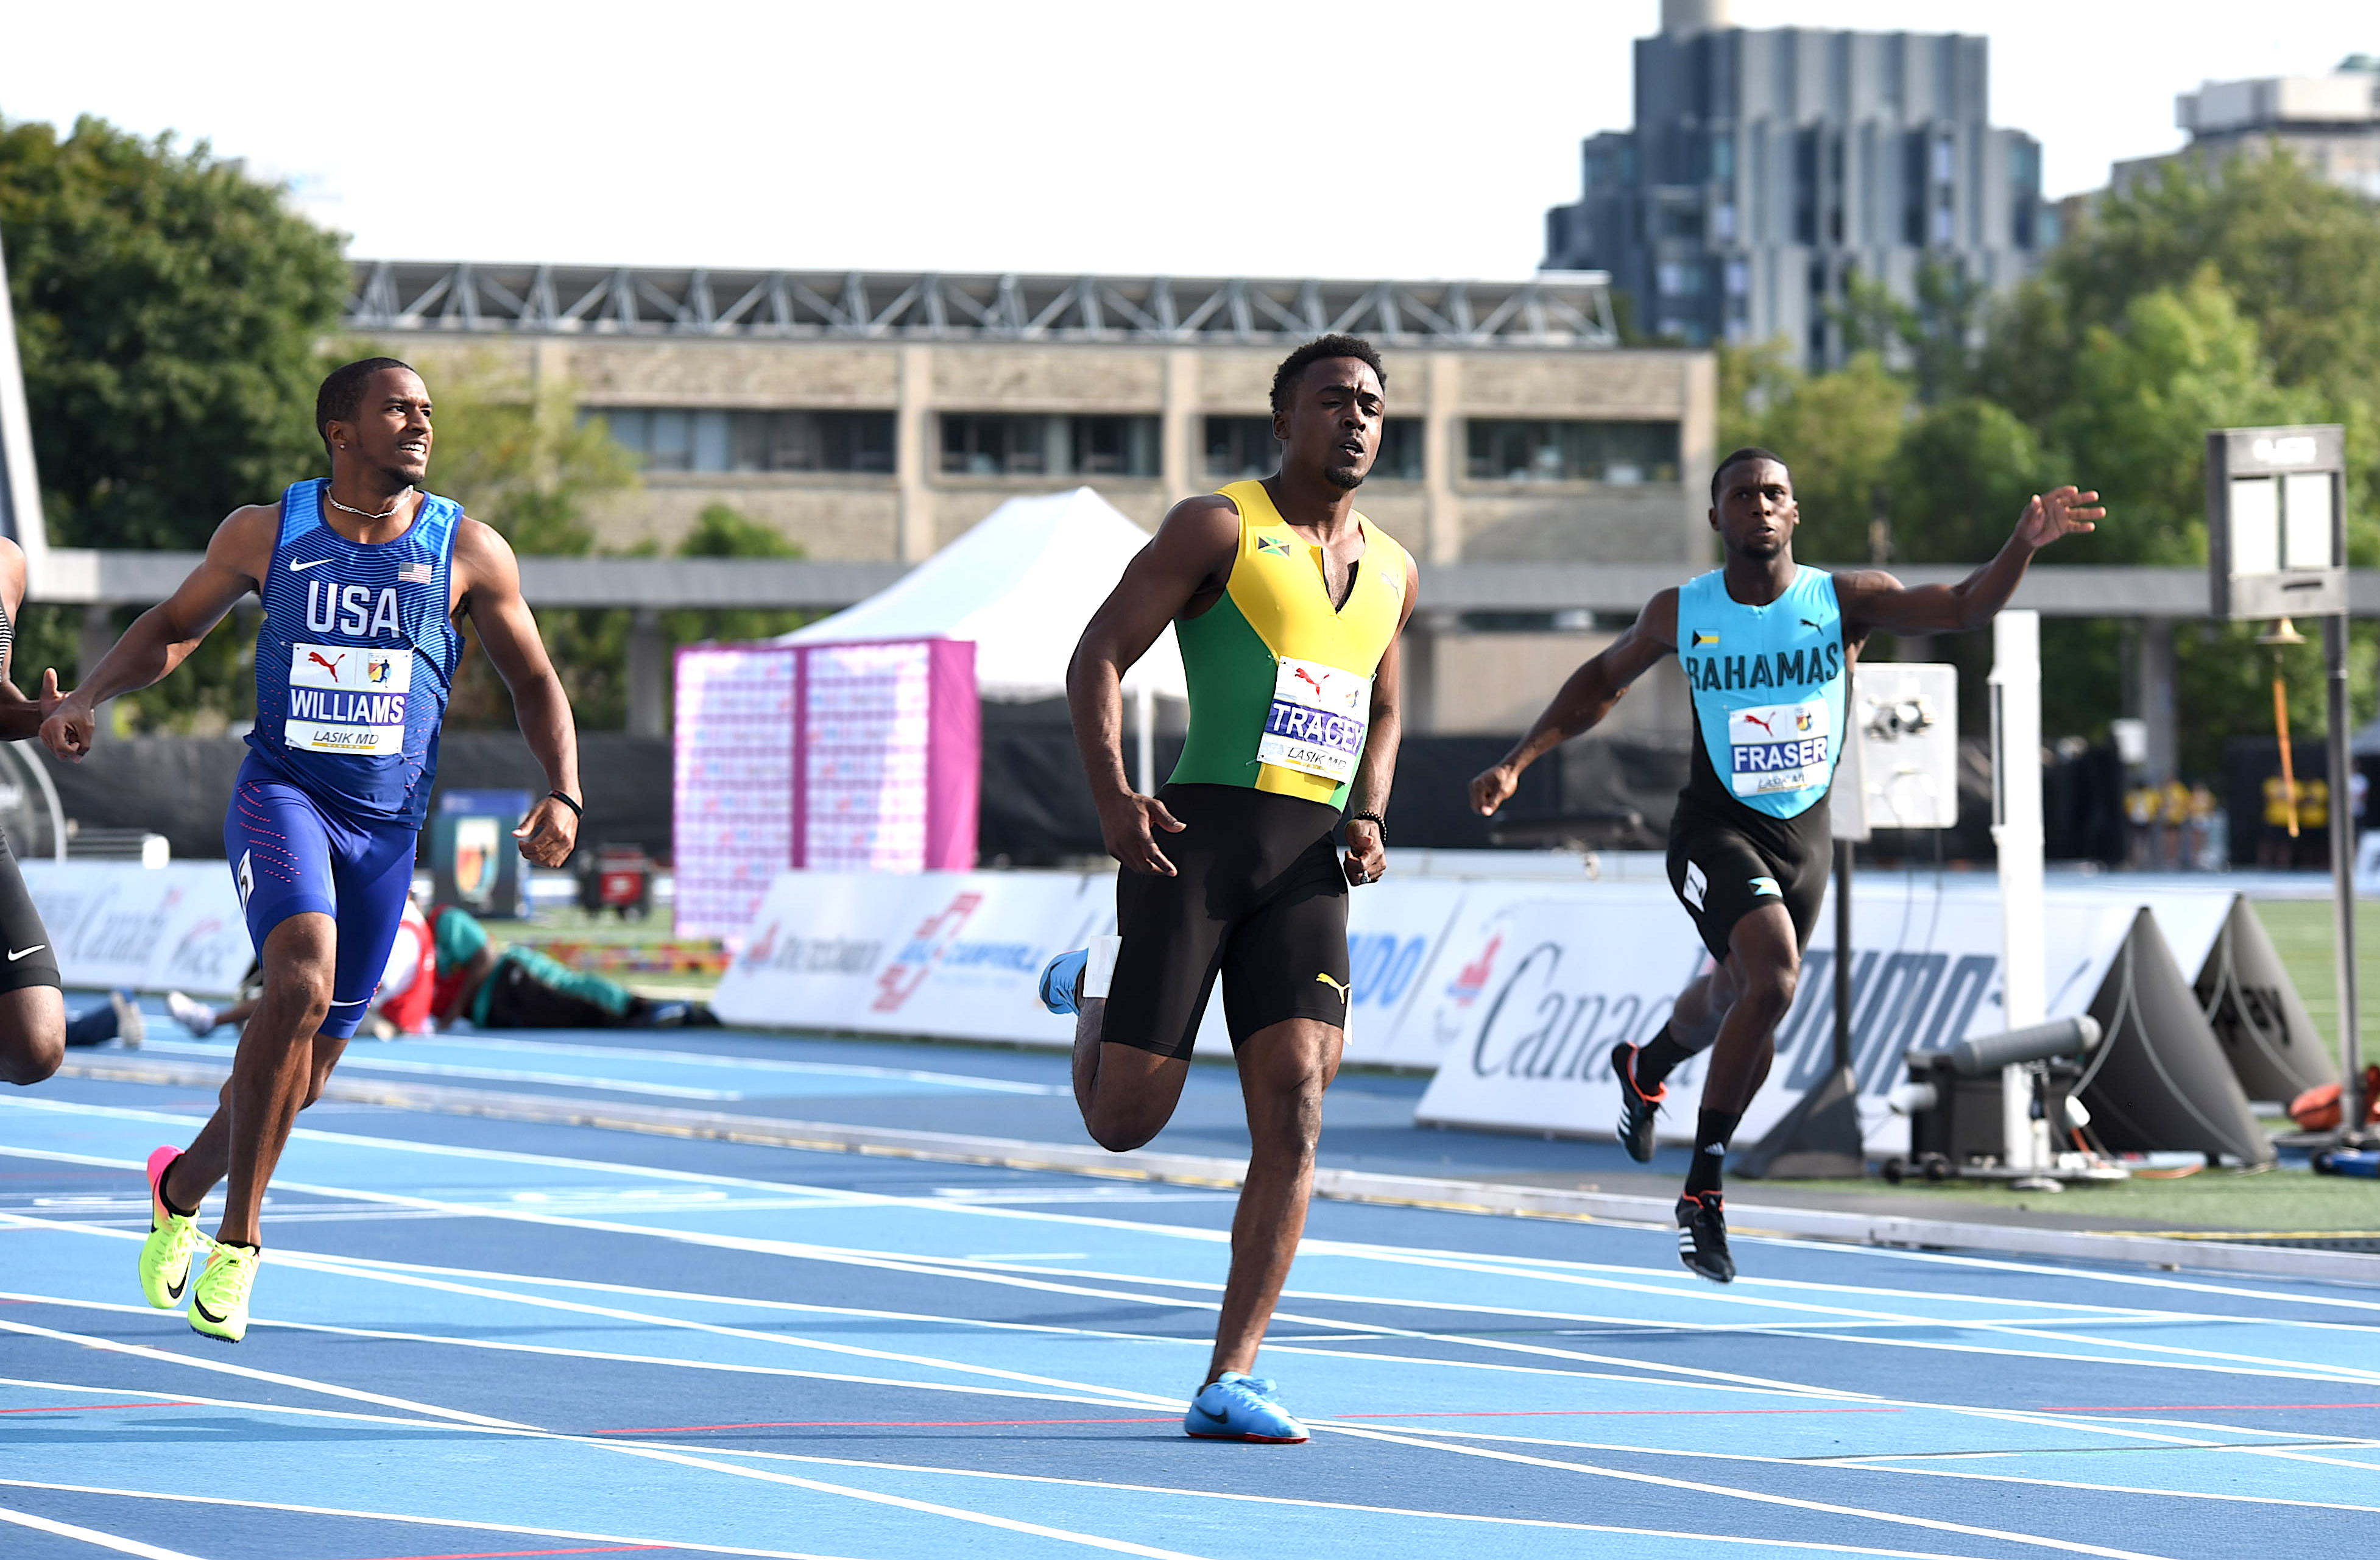 Tyquendo Tracey is the 2018 NACAC Championships men's 100m winner